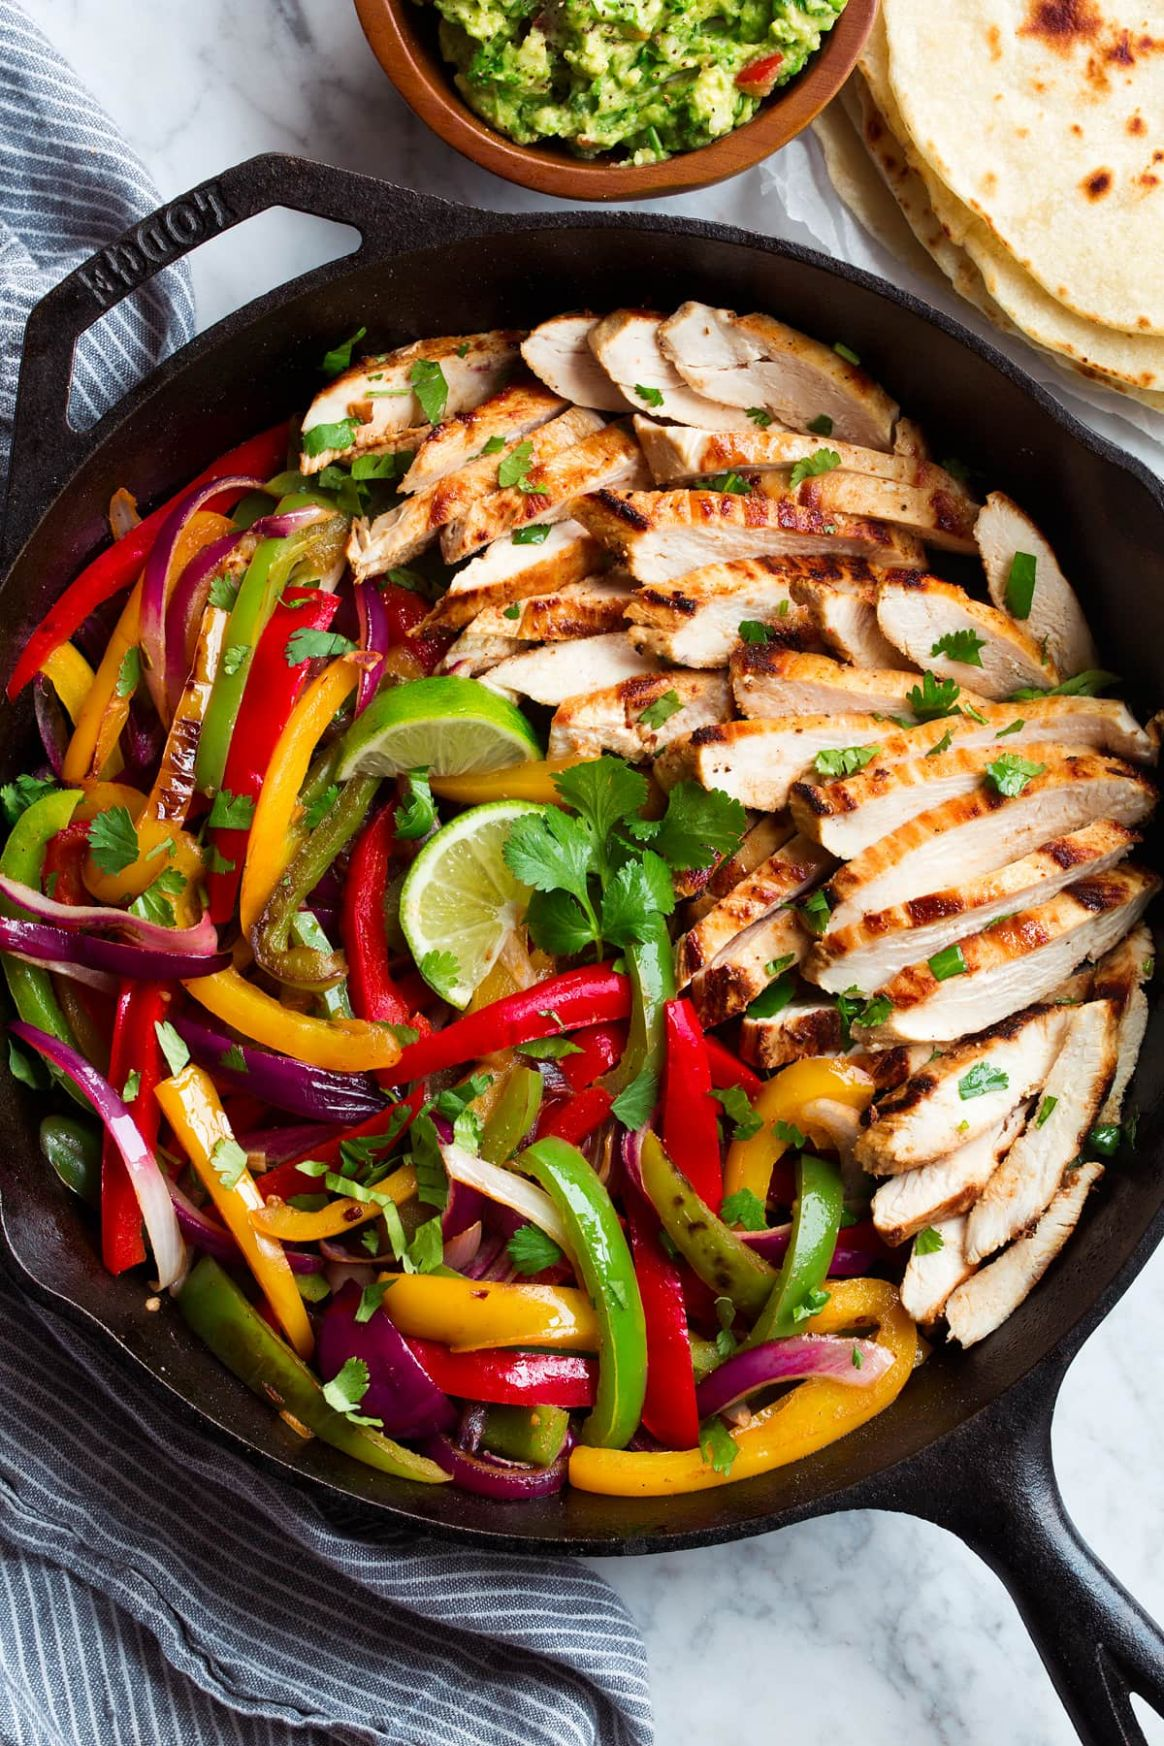 Chicken Fajitas - Cooking Classy - Recipes Chicken Breast Bell Peppers Onions